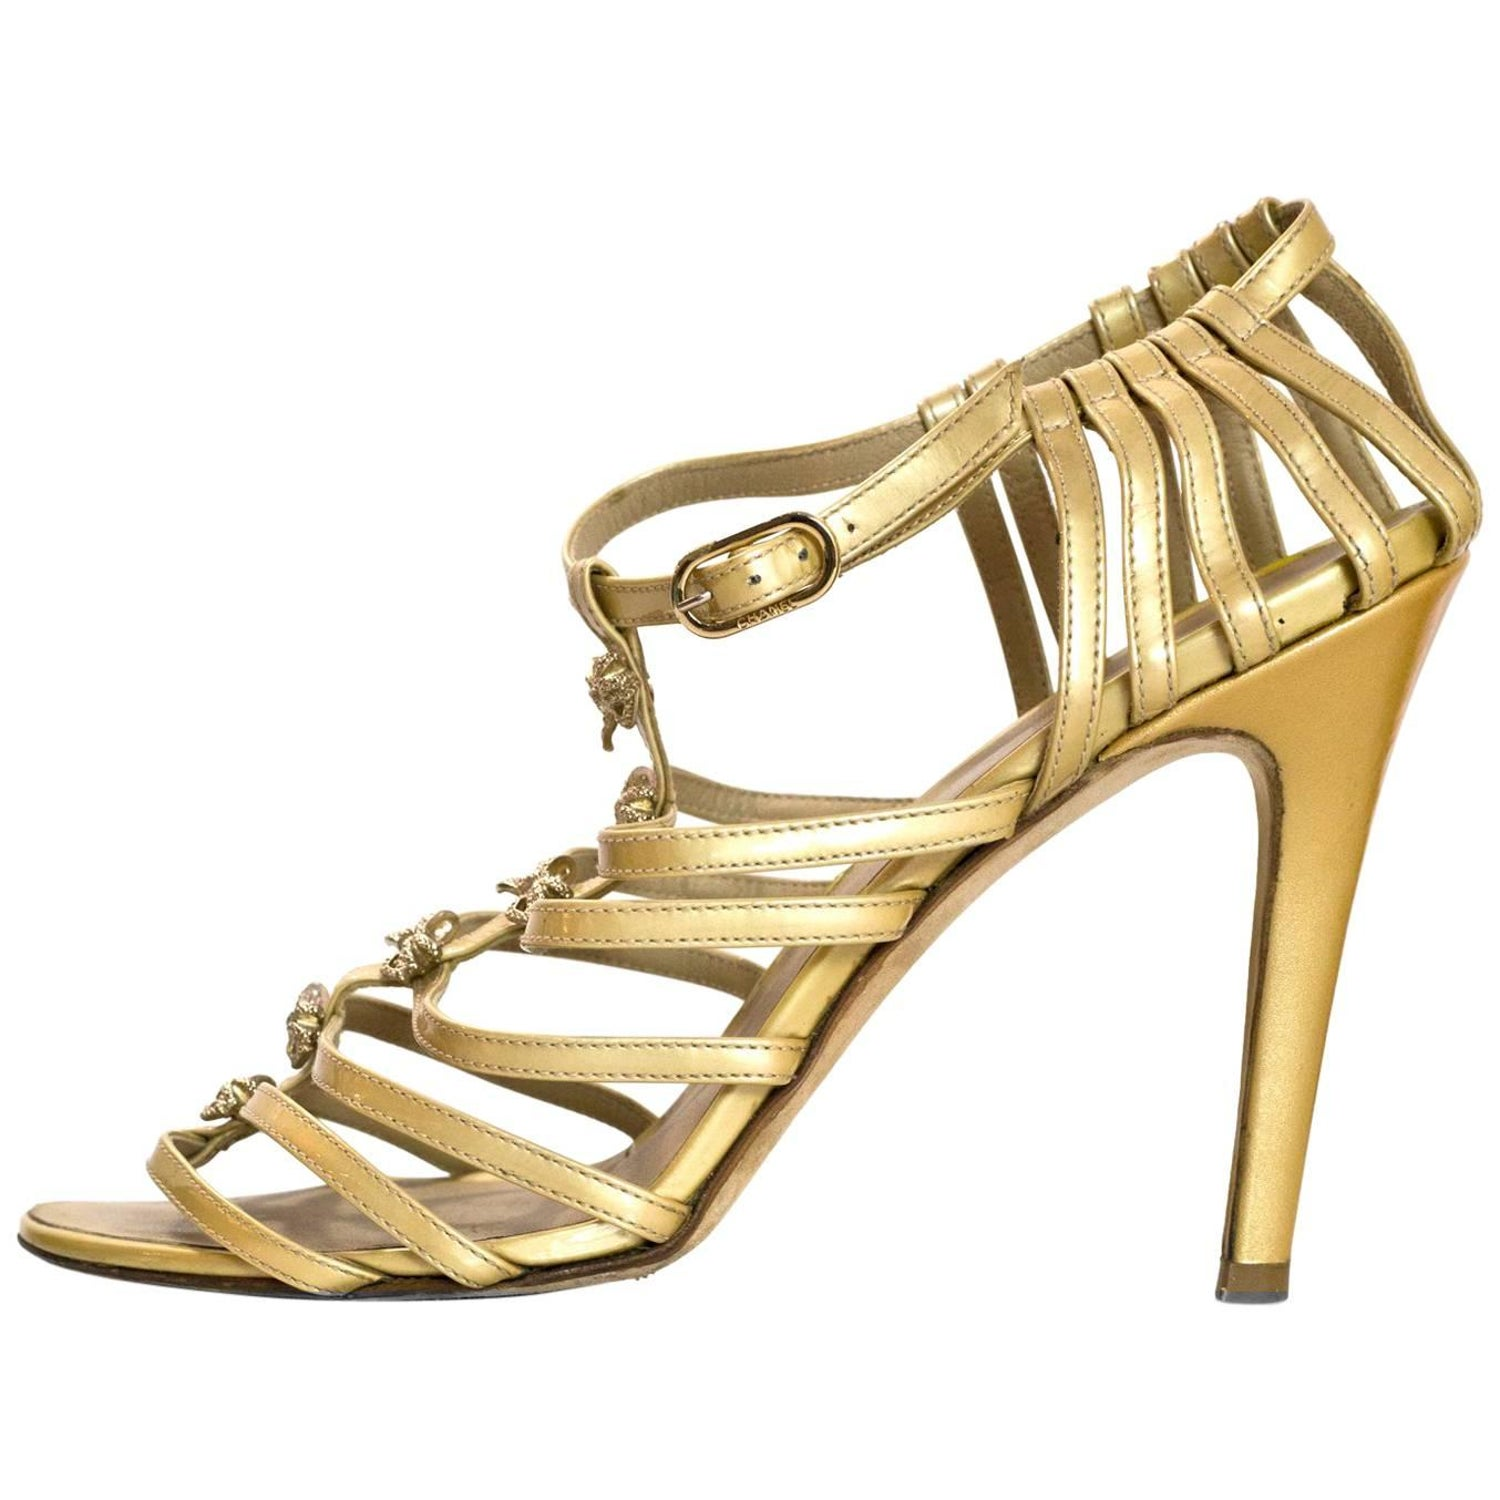 c21d7b1cc57 Chanel Champagne Patent Leather Caged Sandals Sz 41 For Sale at 1stdibs